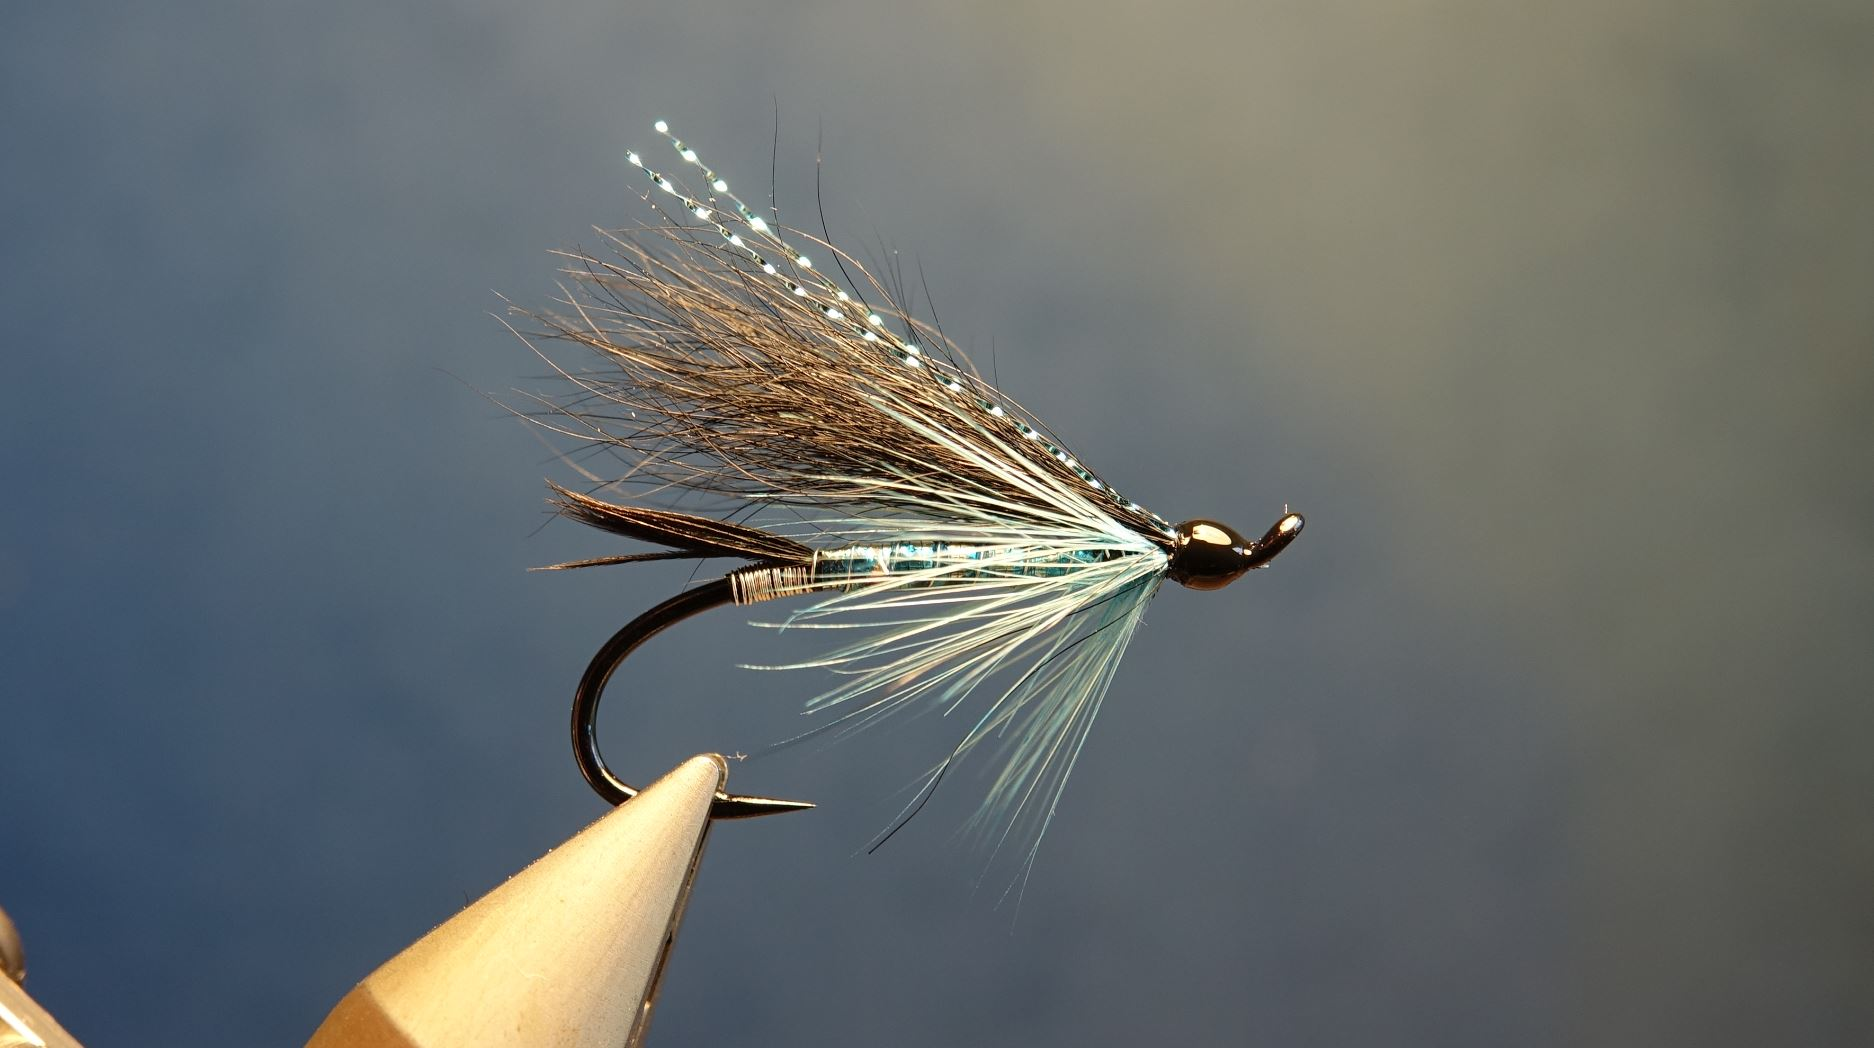 Black & blue fly mouche saumon salmon fly-tying eclosion